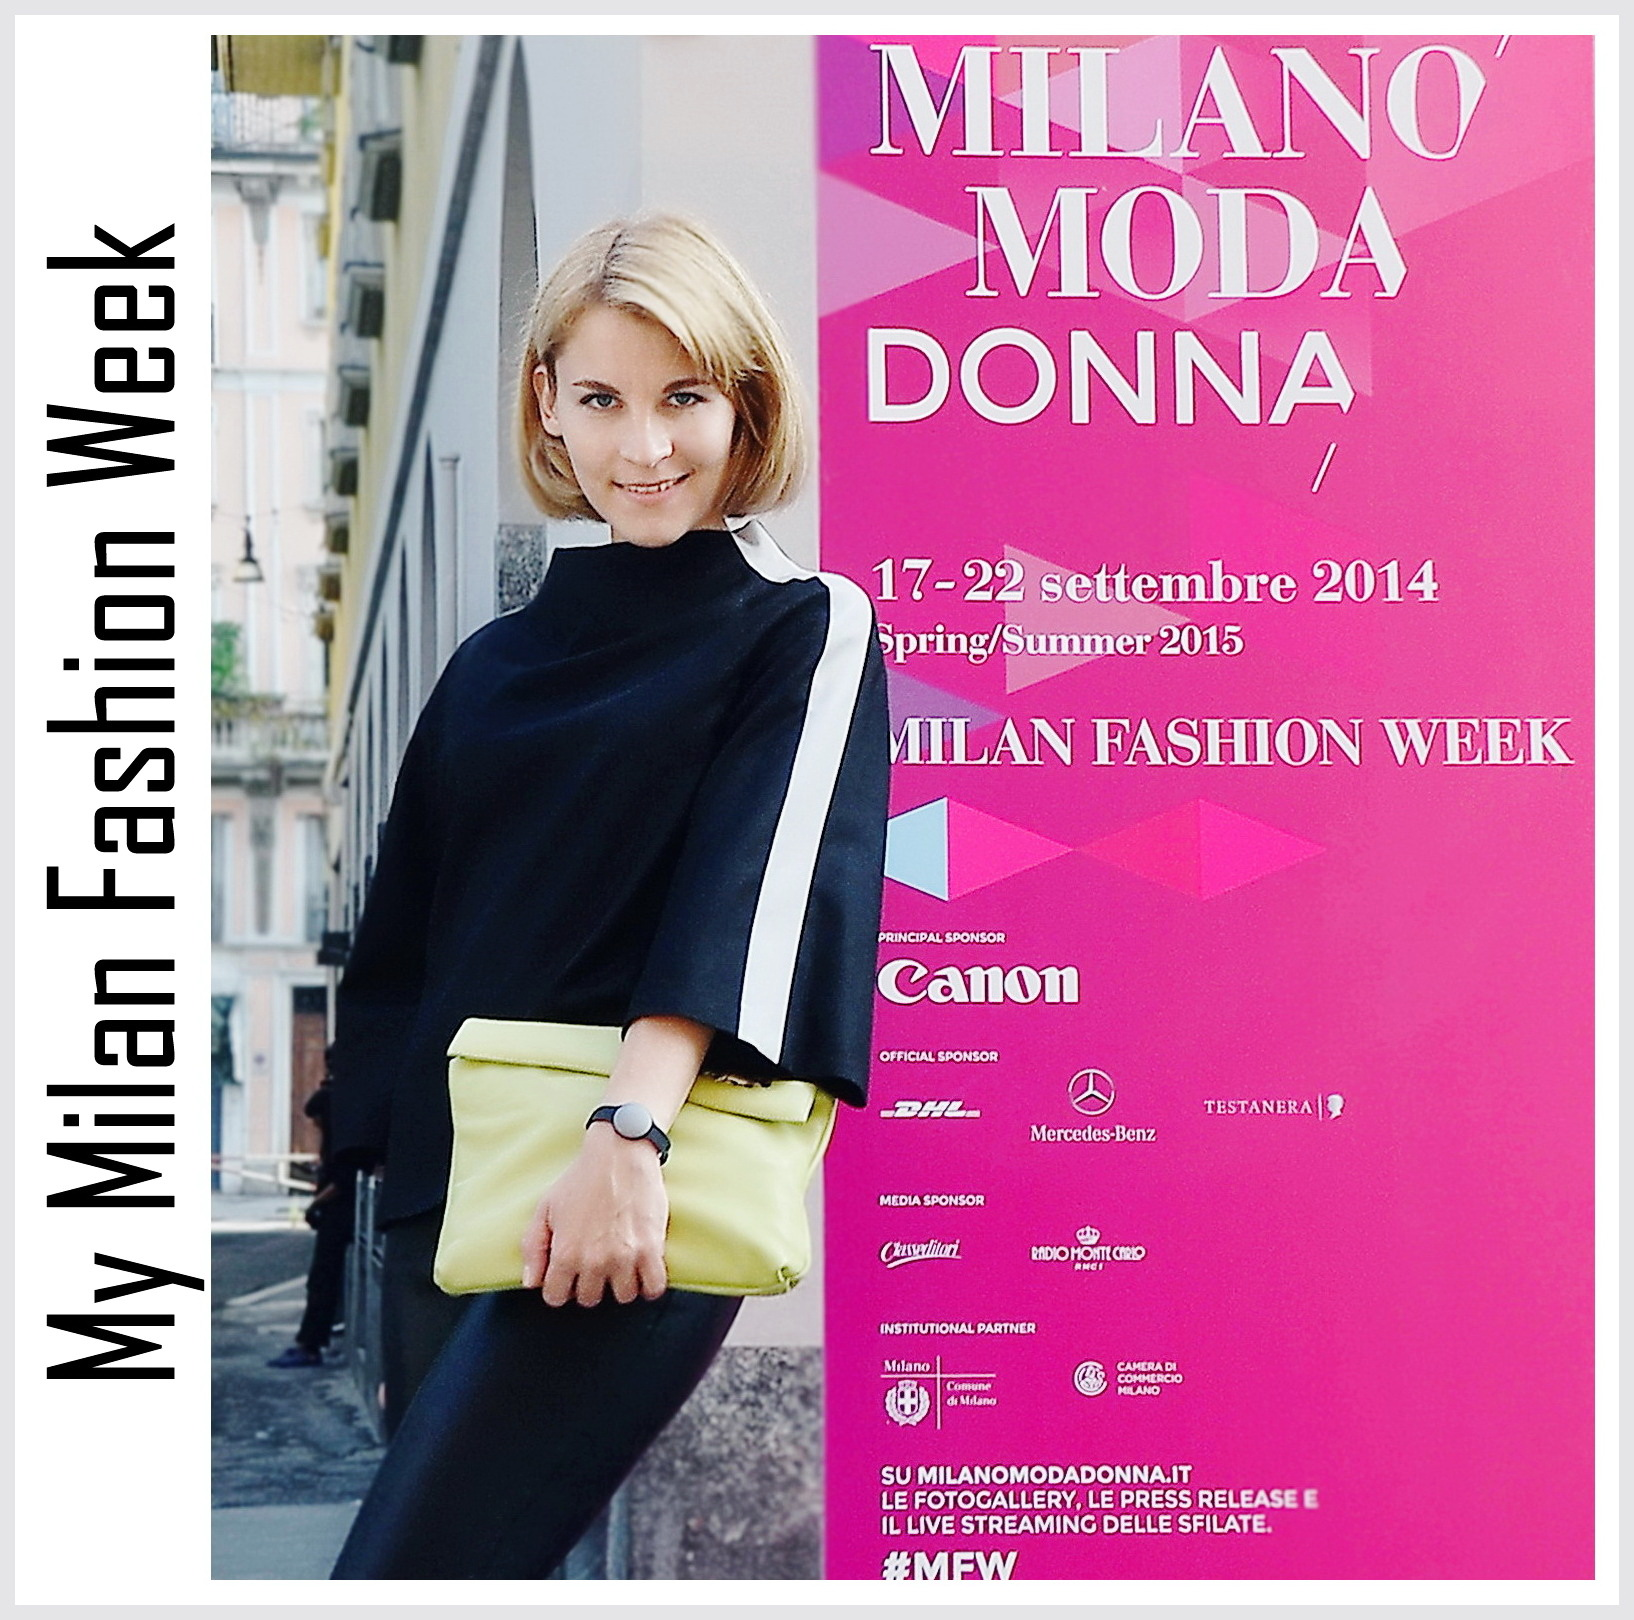 My Milan Fashion Week